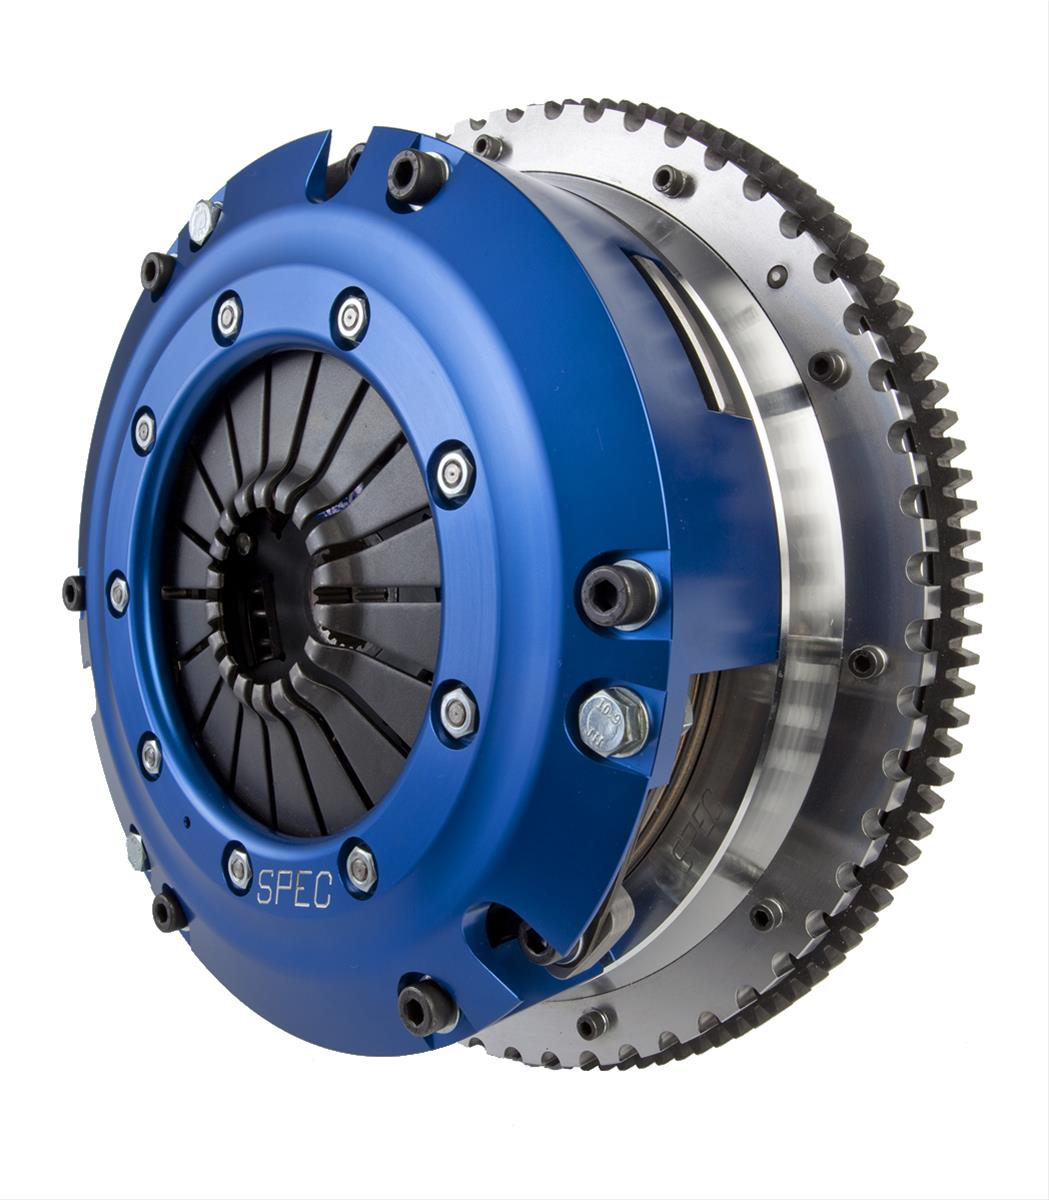 Spec Super Twin Multi Disc Clutch And Flywheel Kits Sc68st 2 Free Shipping On Orders Over 99 At Summit Racing